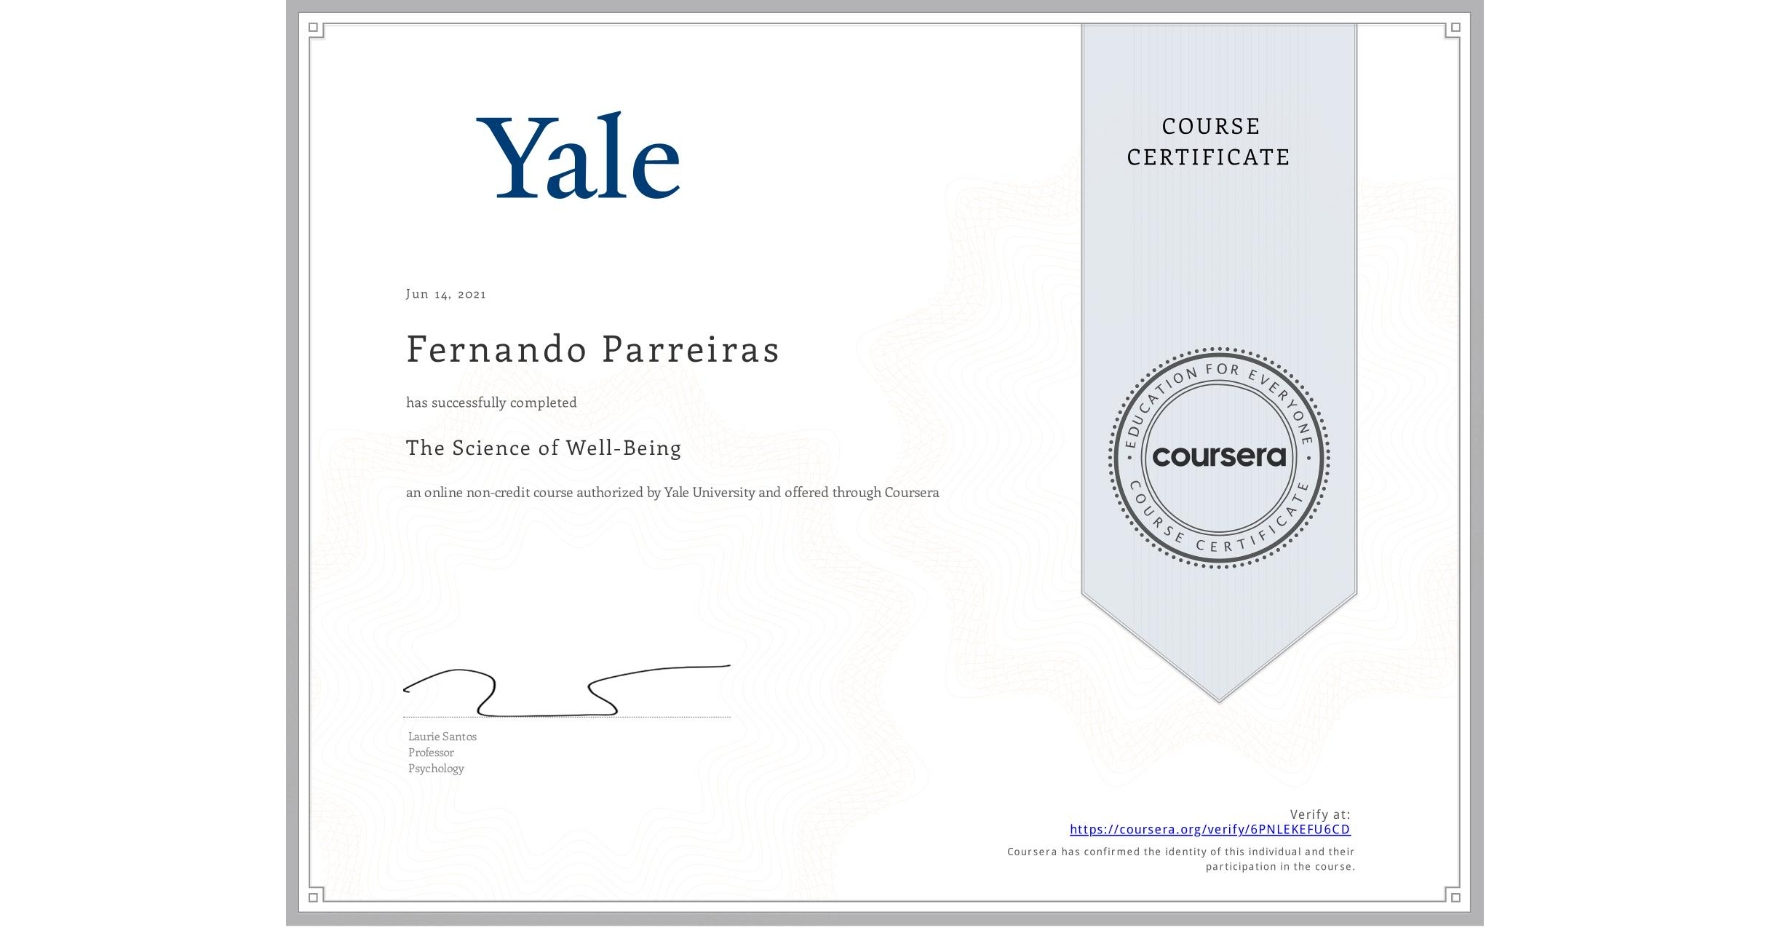 View certificate for Fernando Parreiras, The Science of Well-Being, an online non-credit course authorized by Yale University and offered through Coursera